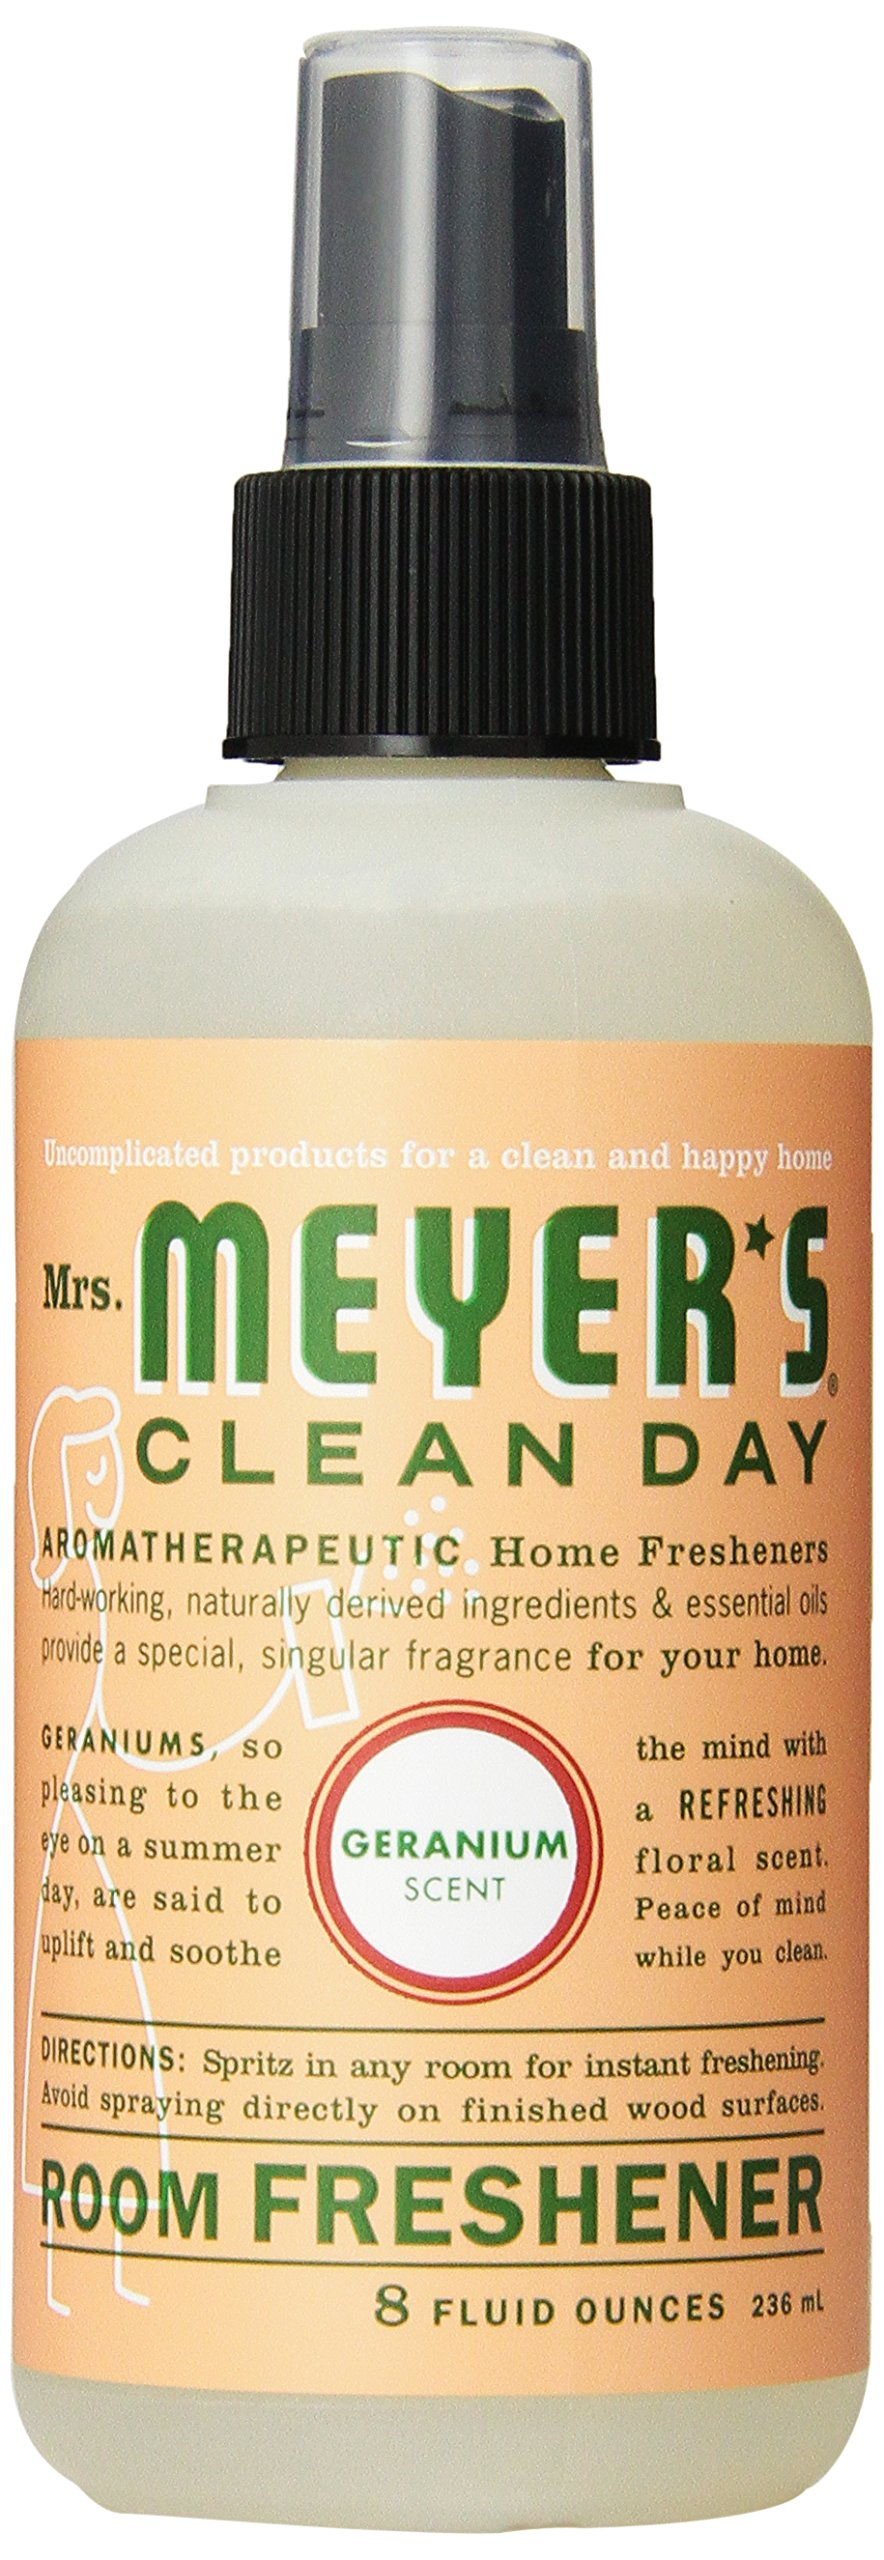 Mrs. Meyer's Geranium Room Freshener, 8-Fluid Ounce Bottles (Pack of 6) by Mrs. Meyer's Clean Day (Image #1)